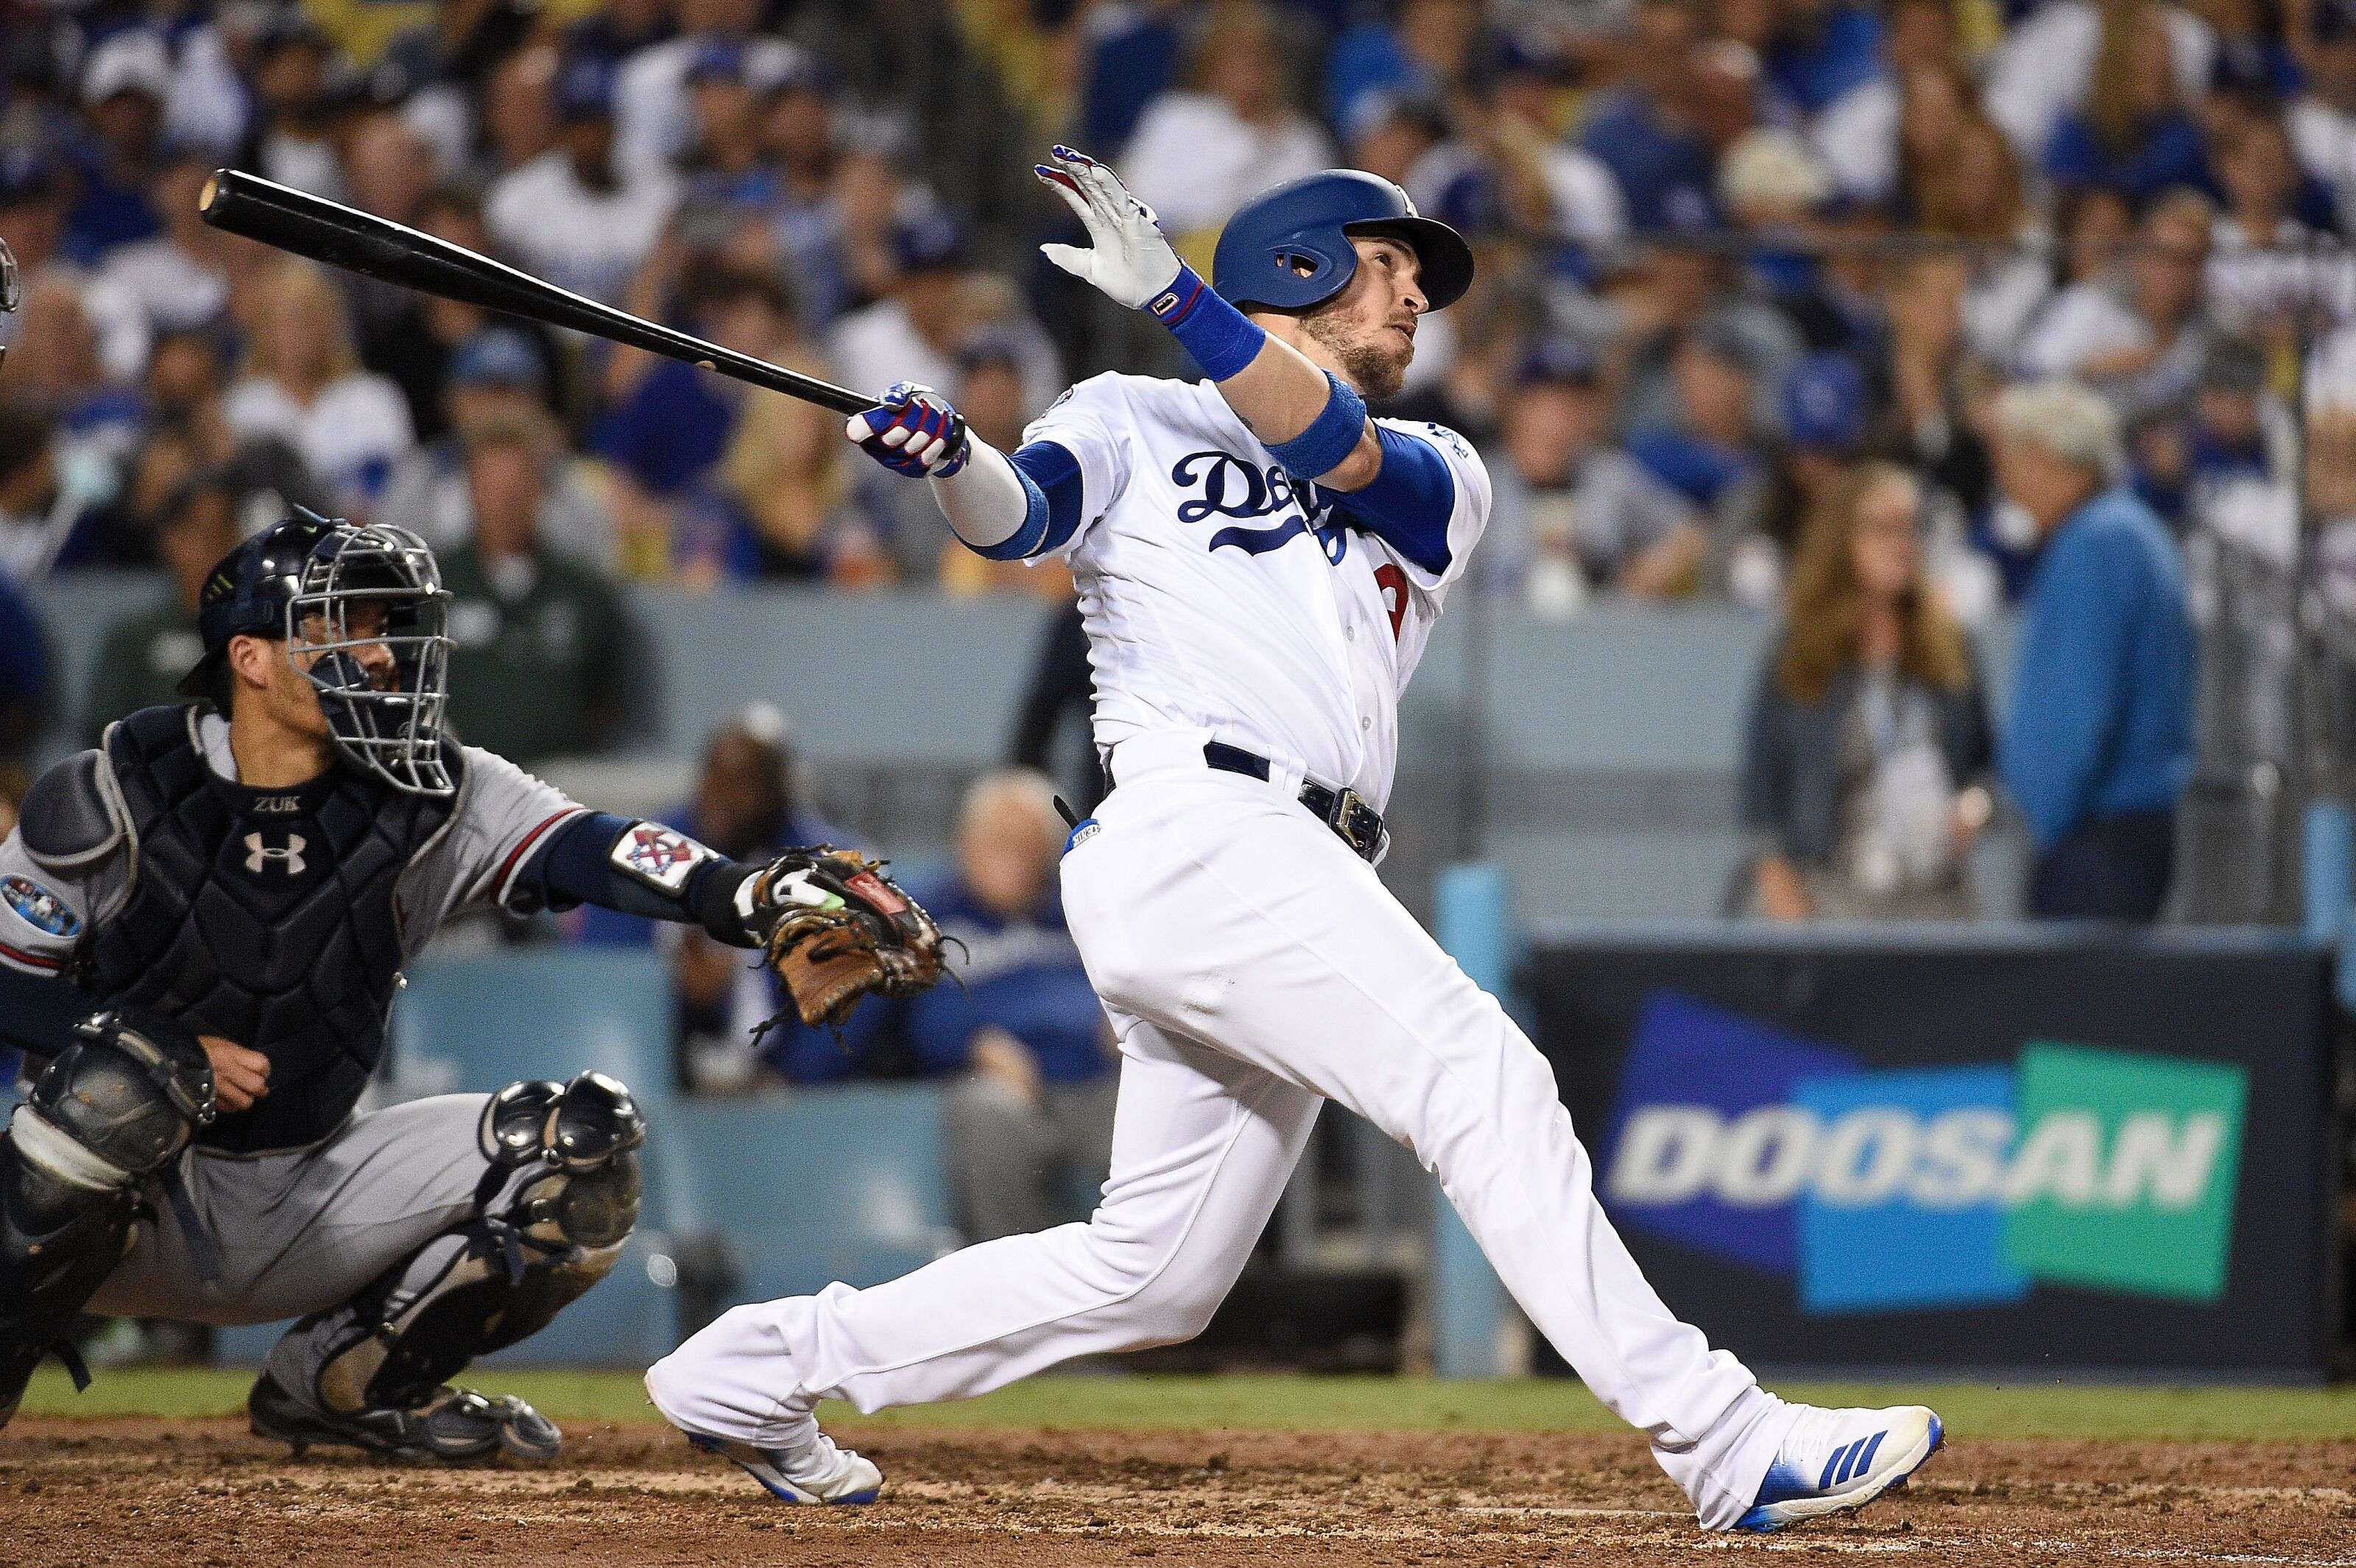 Milwaukee Brewers: Key details for Yasmani Grandal's deal